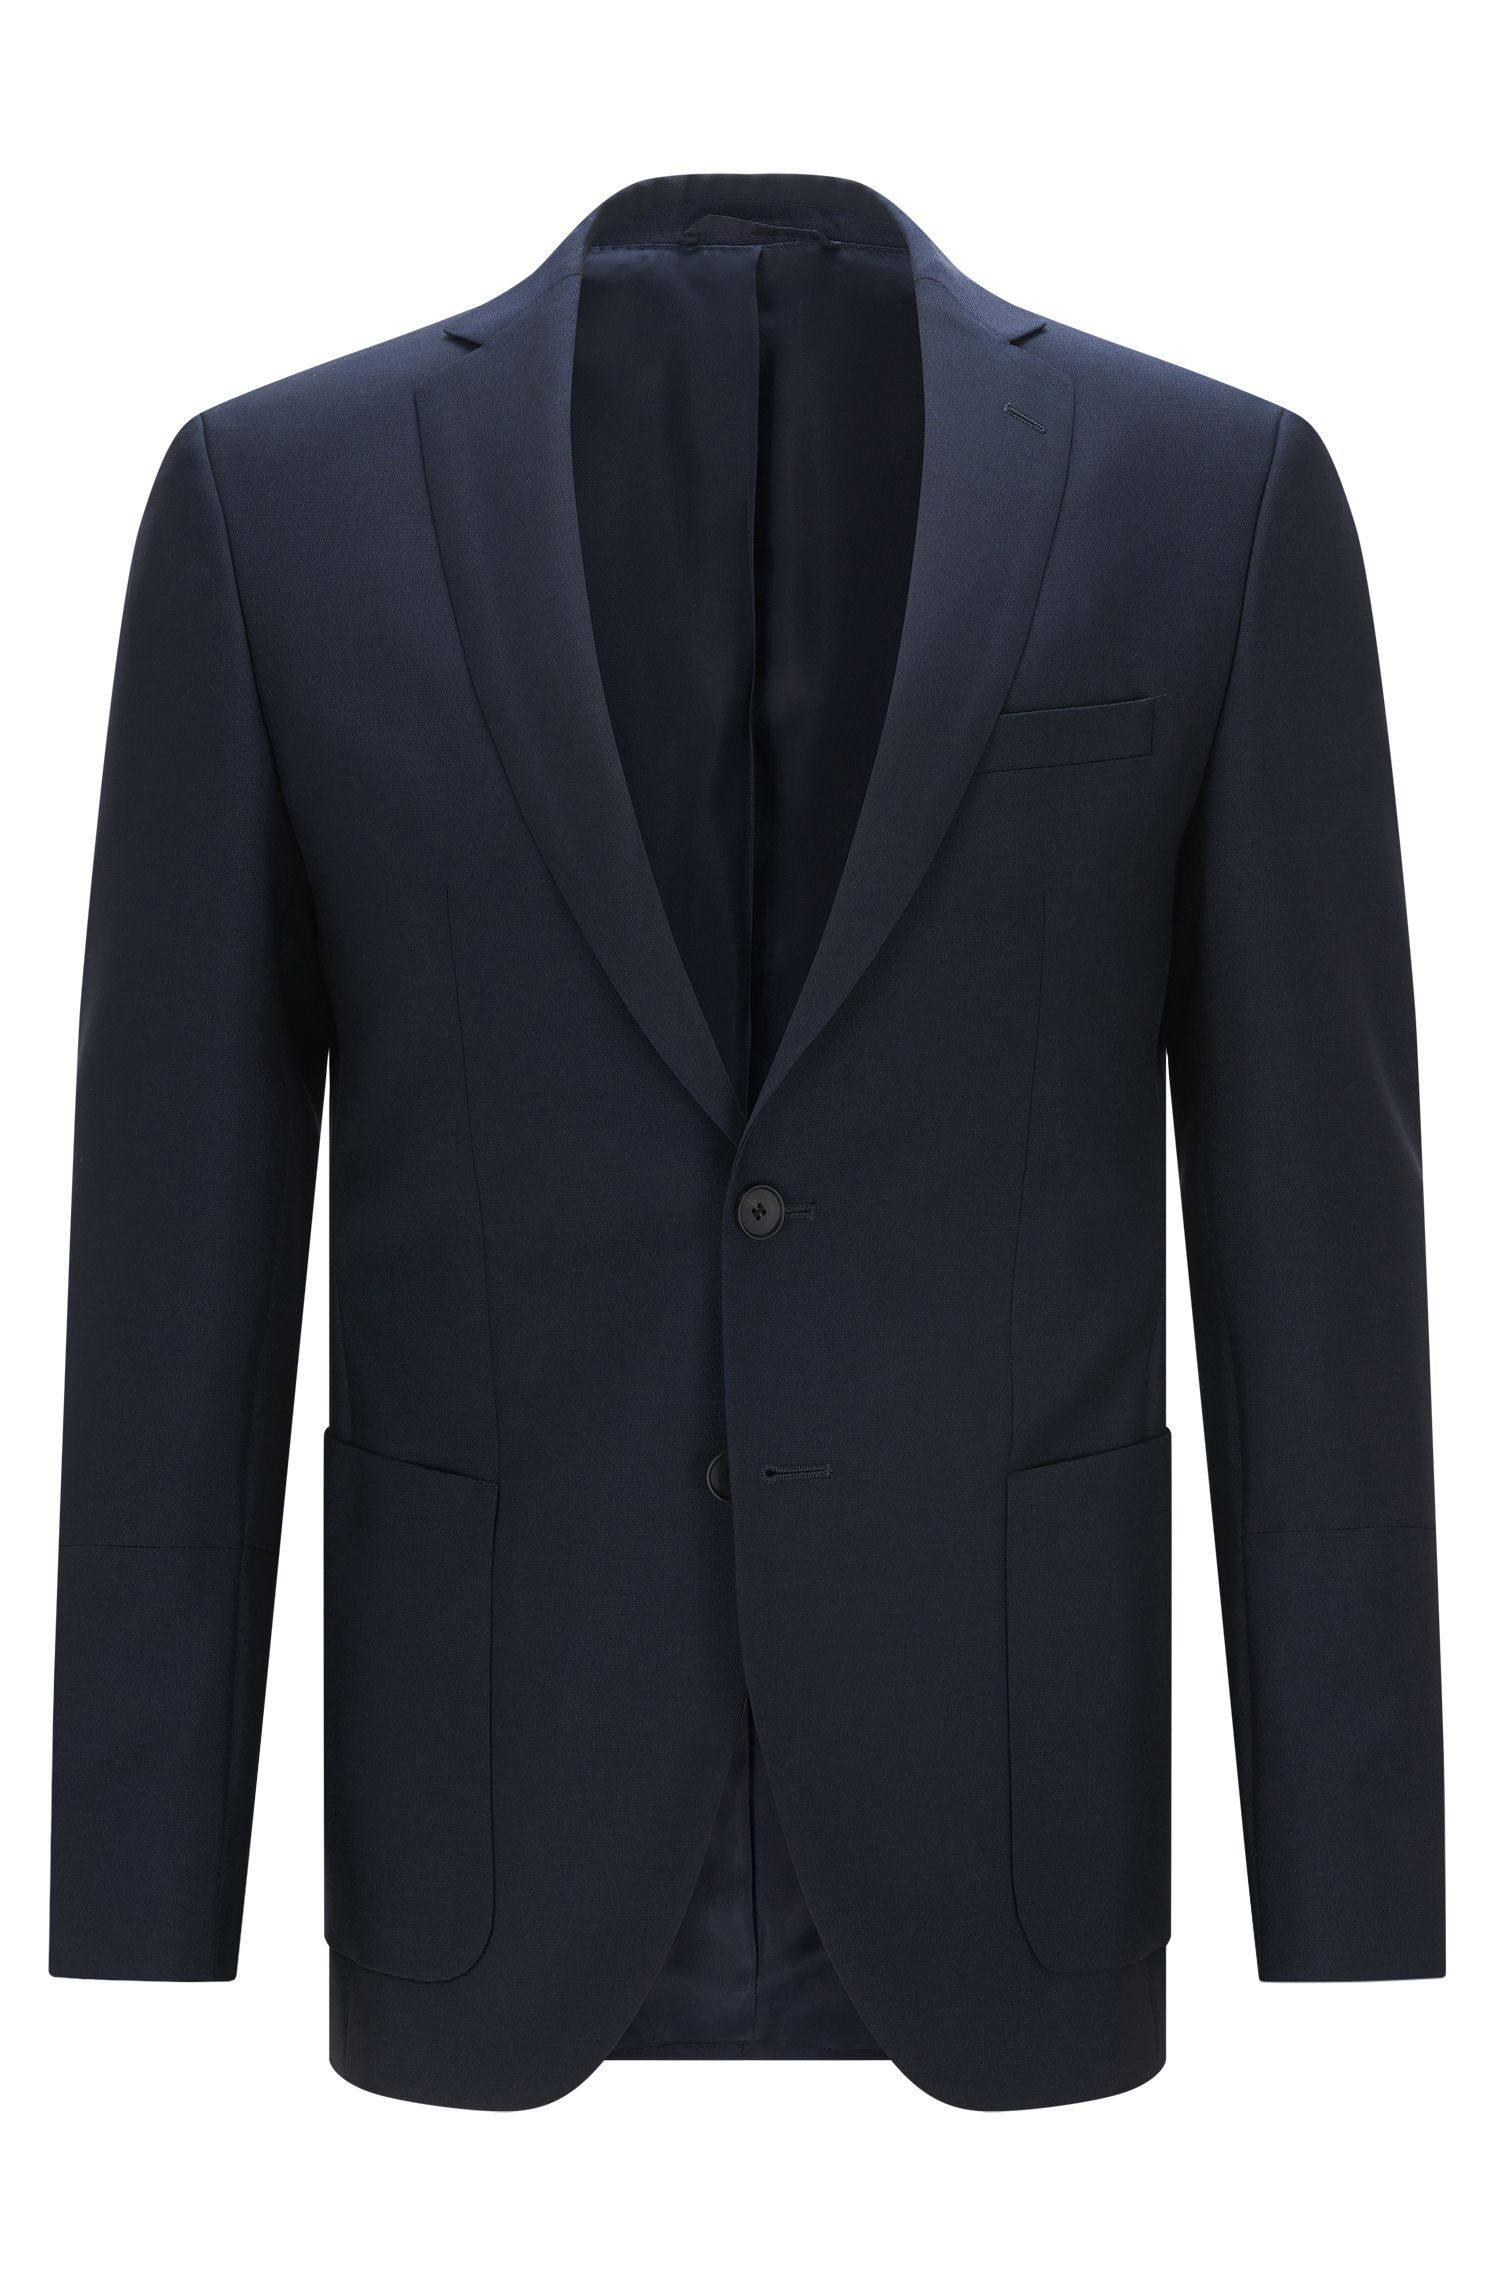 'Rodwil' | Extra-Slim Fit, Virgin Mohair Sport Coat